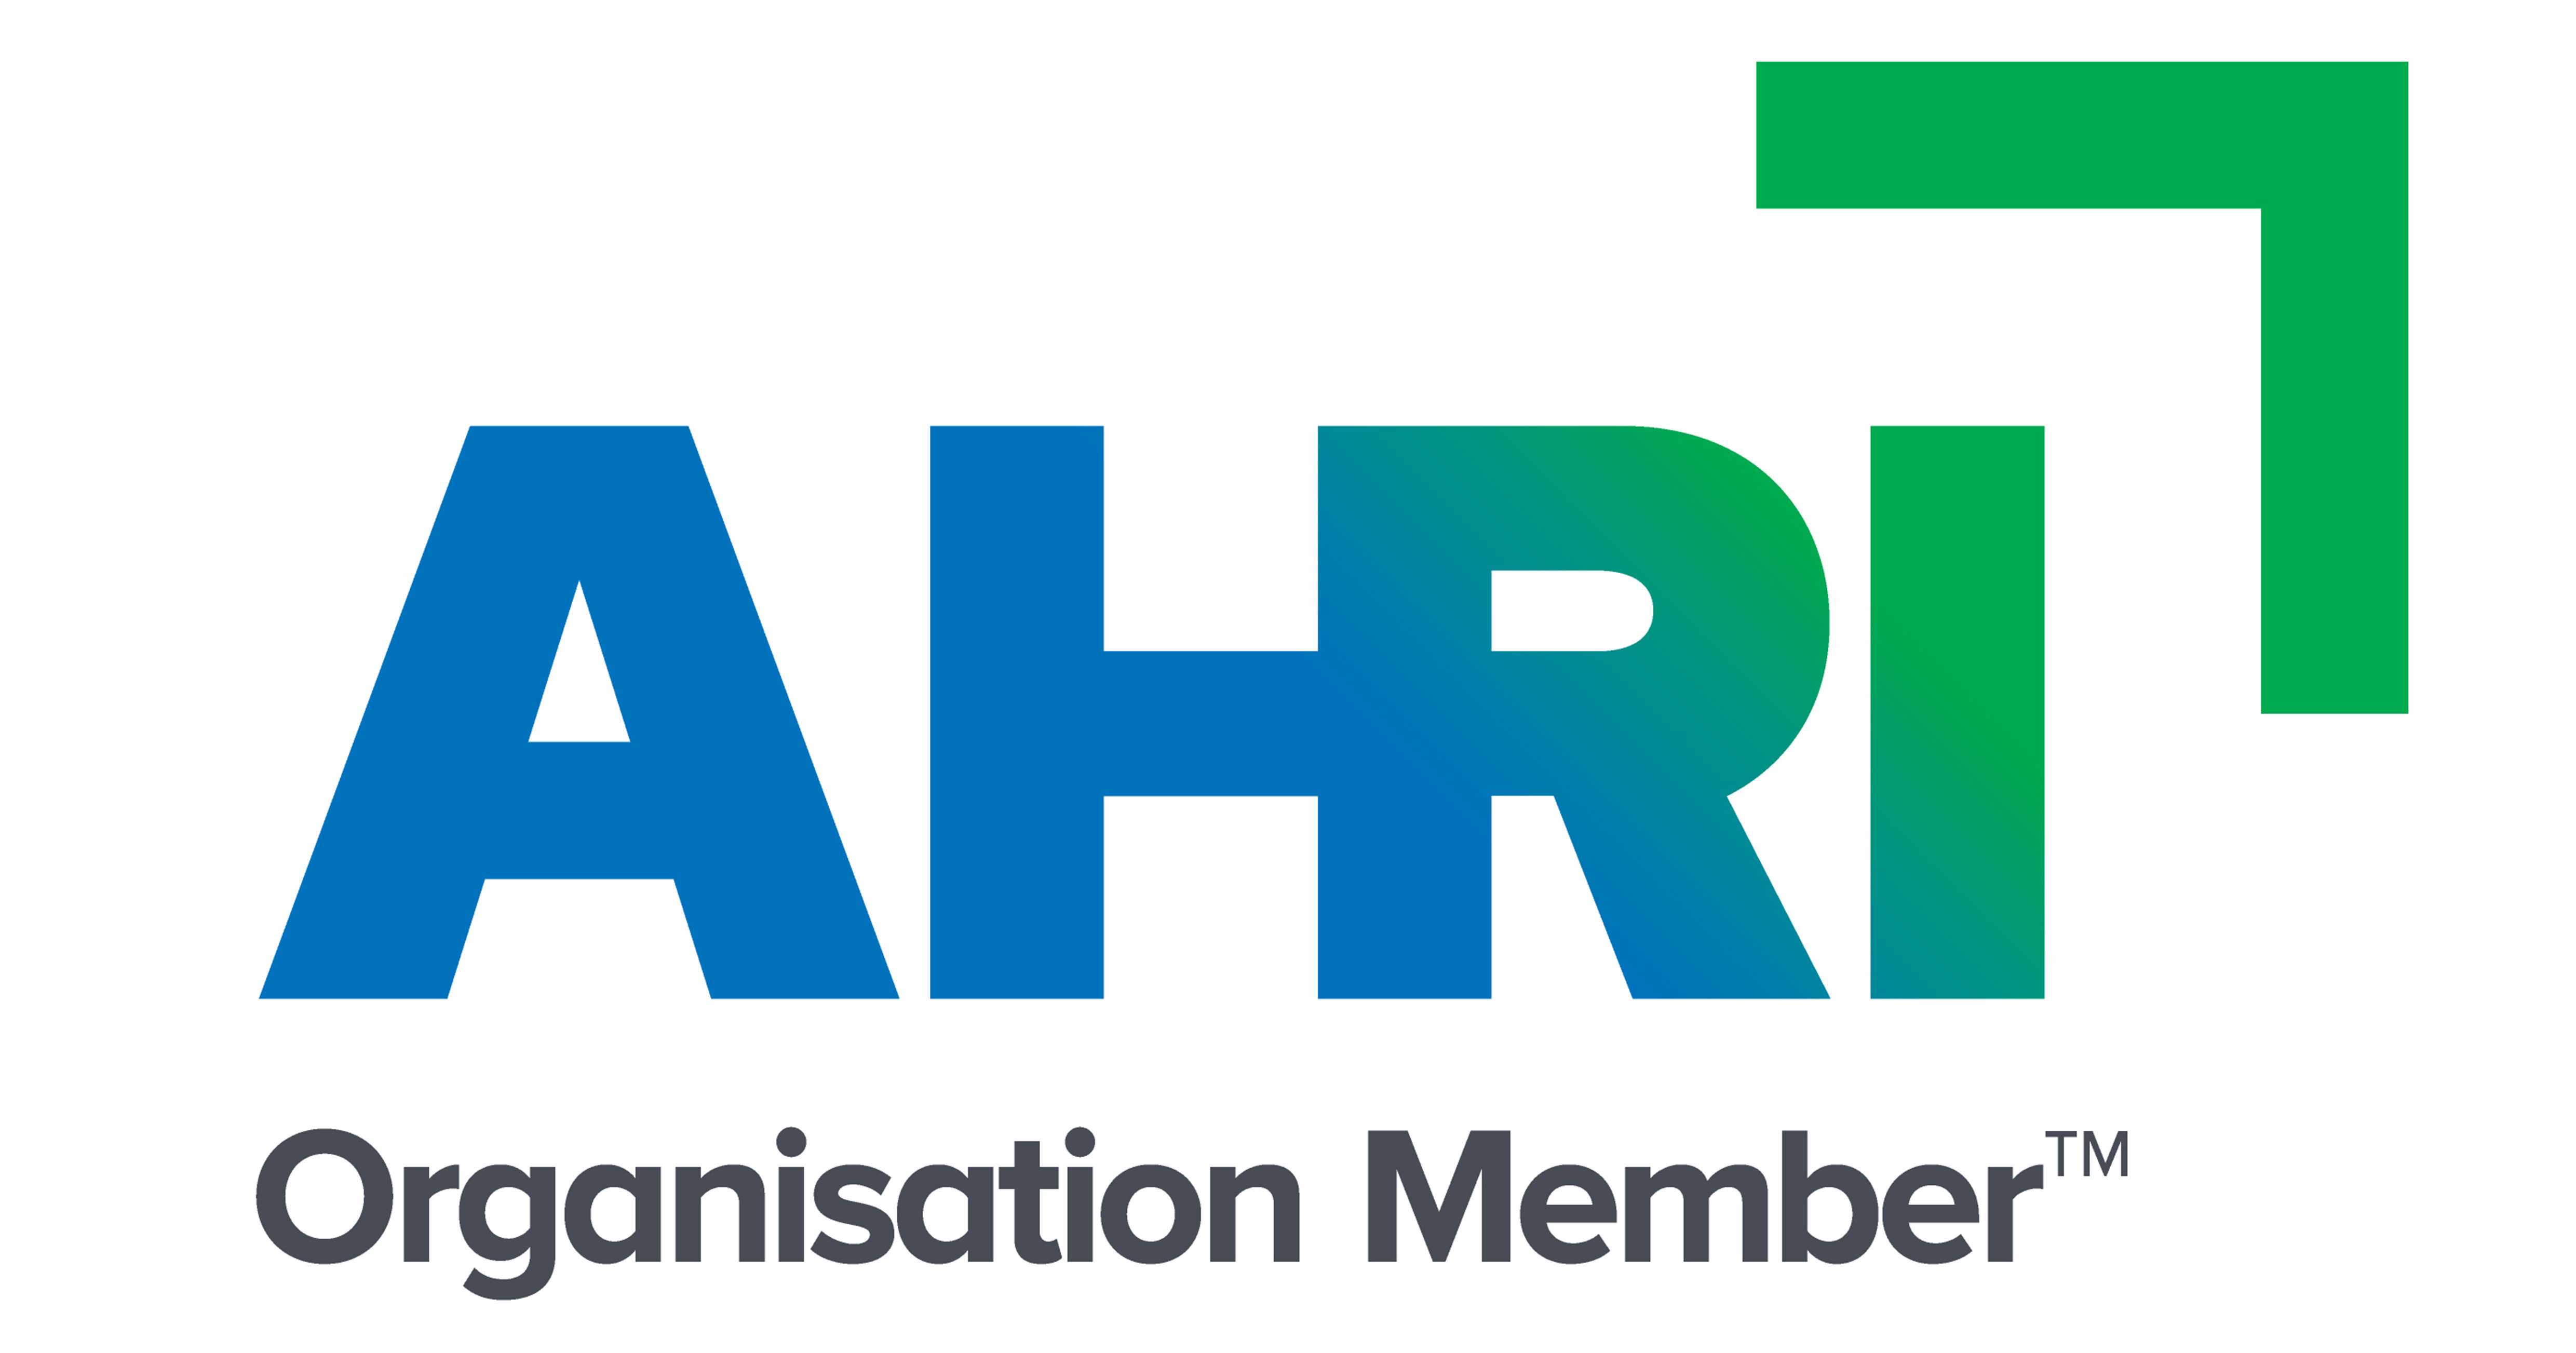 organisation member logo of the Australian HR Institute